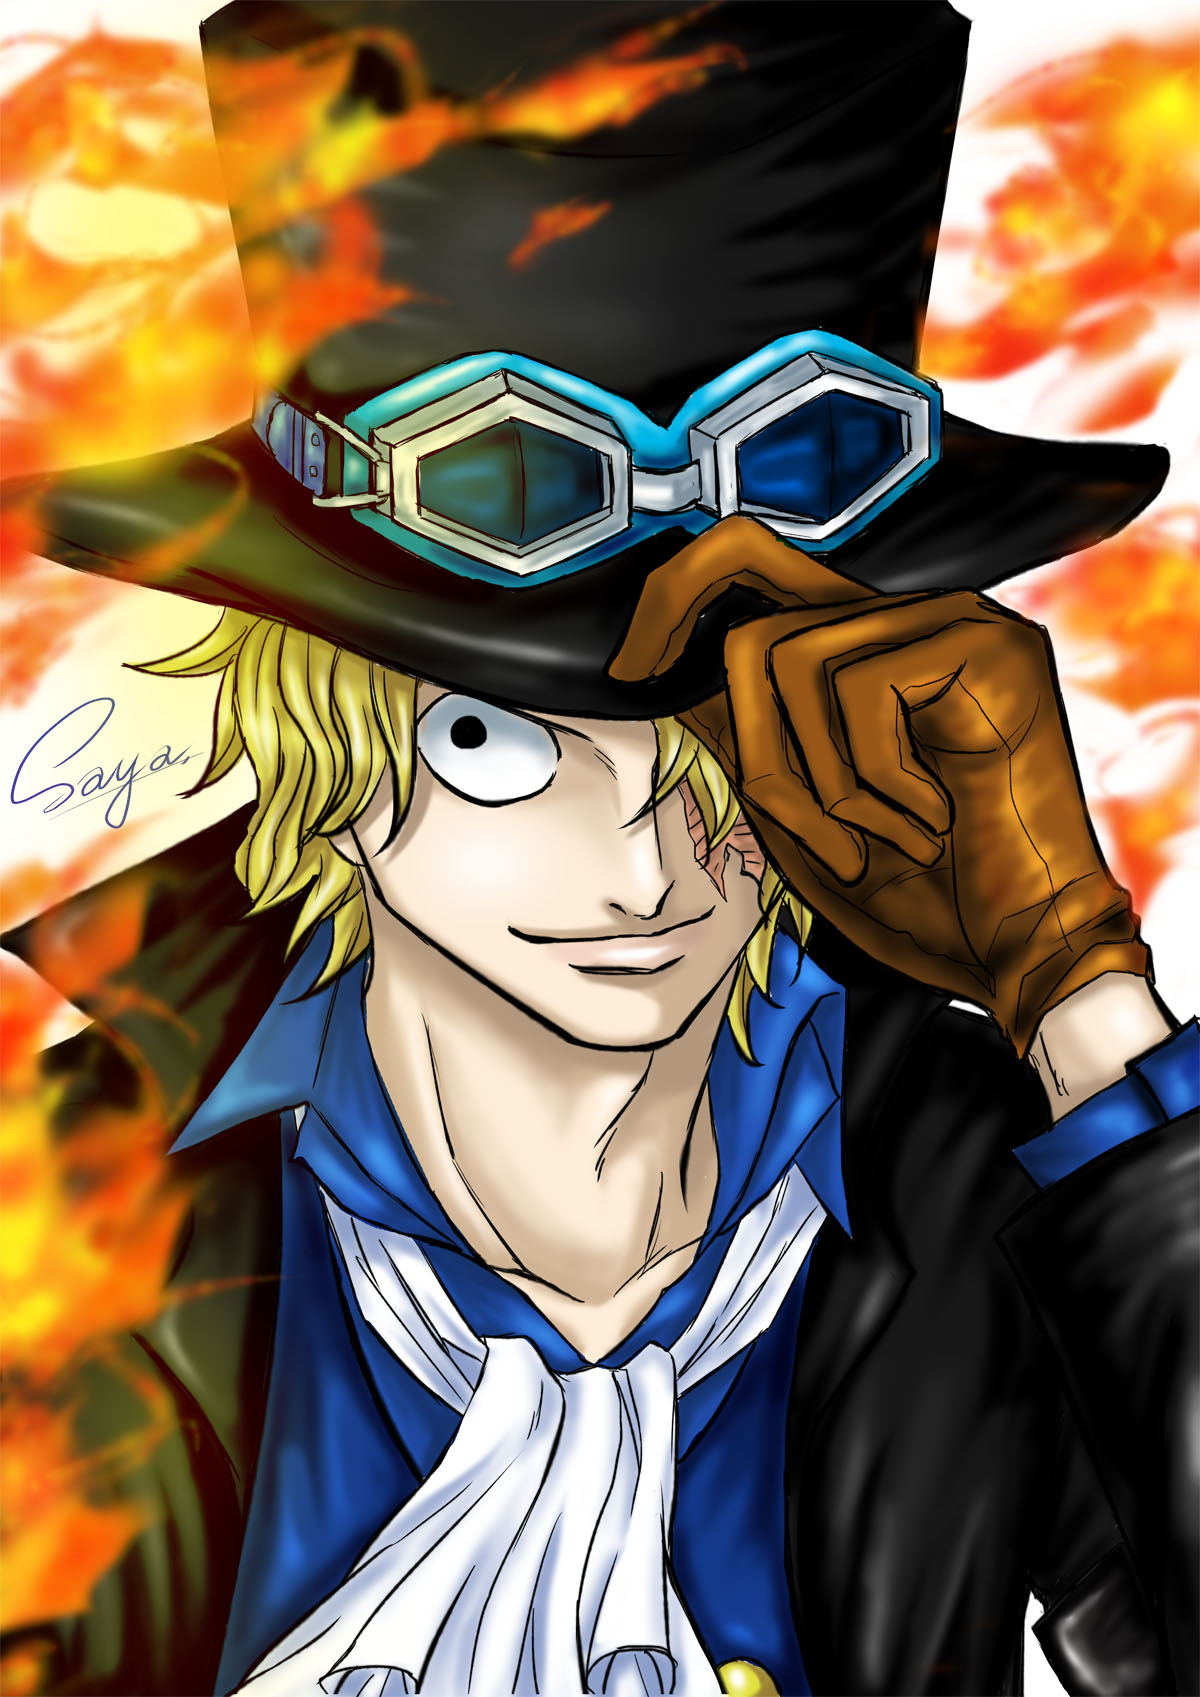 Sabo - ONE PIECE   page 11 of 11 - Zerochan Anime Image Board